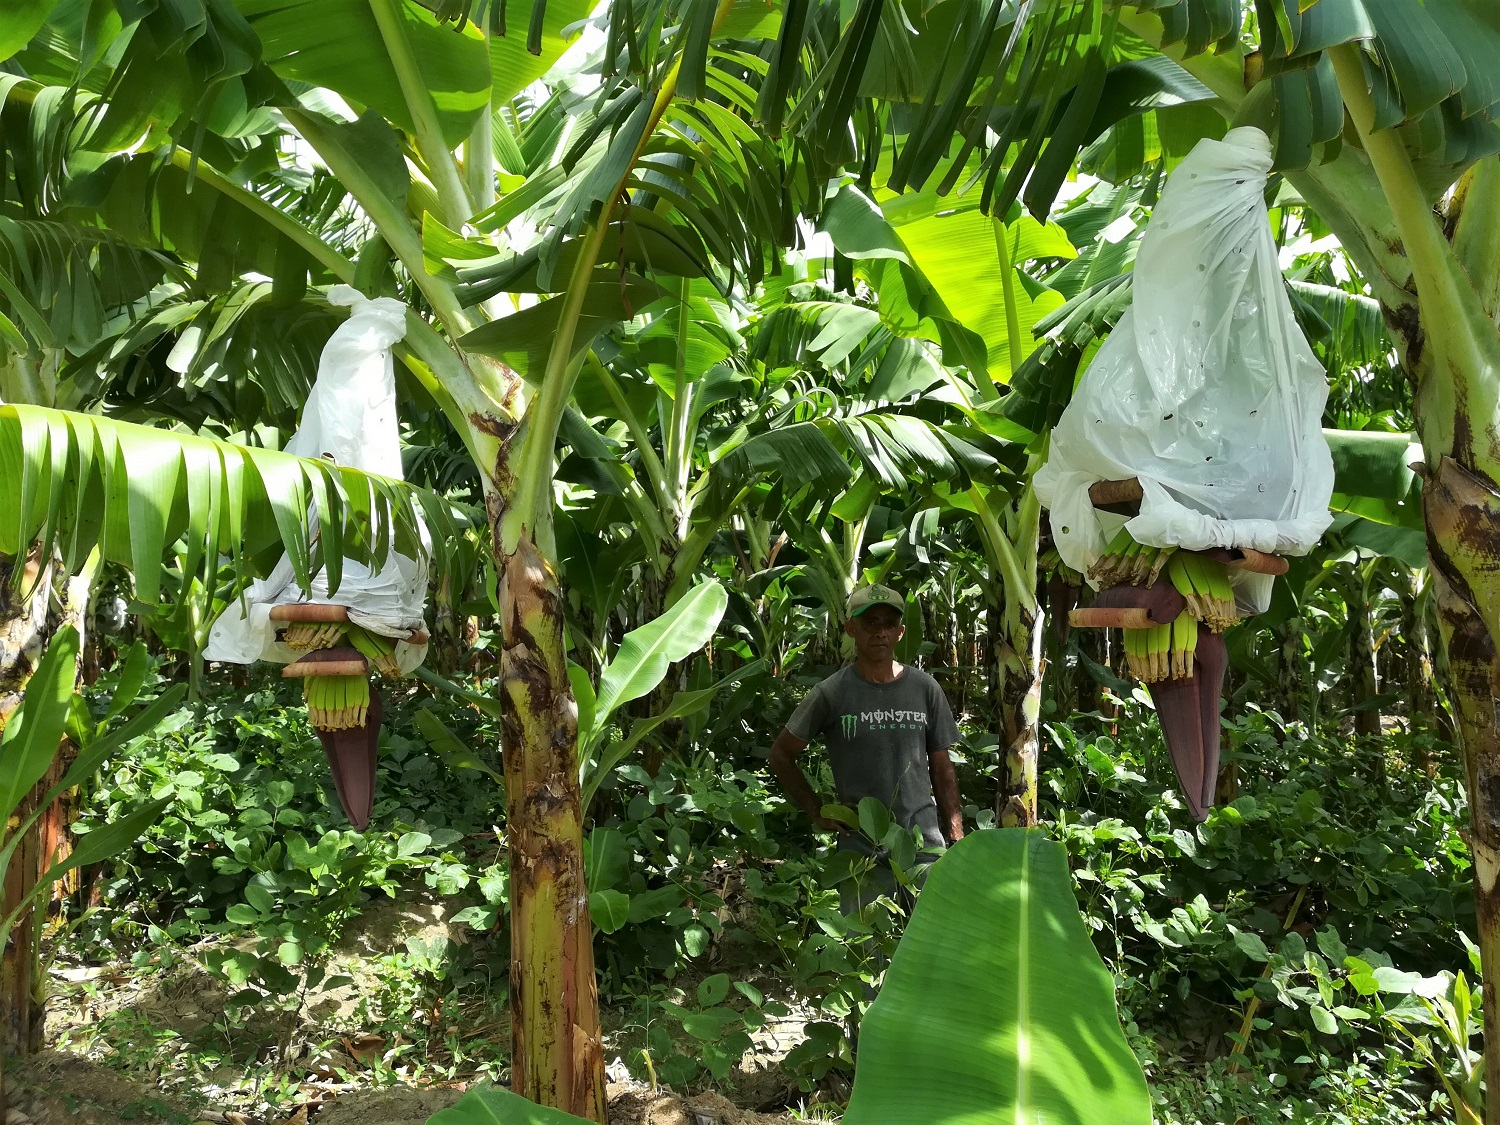 Ground cover plants between banana rows substantially reduce need for manual weeding